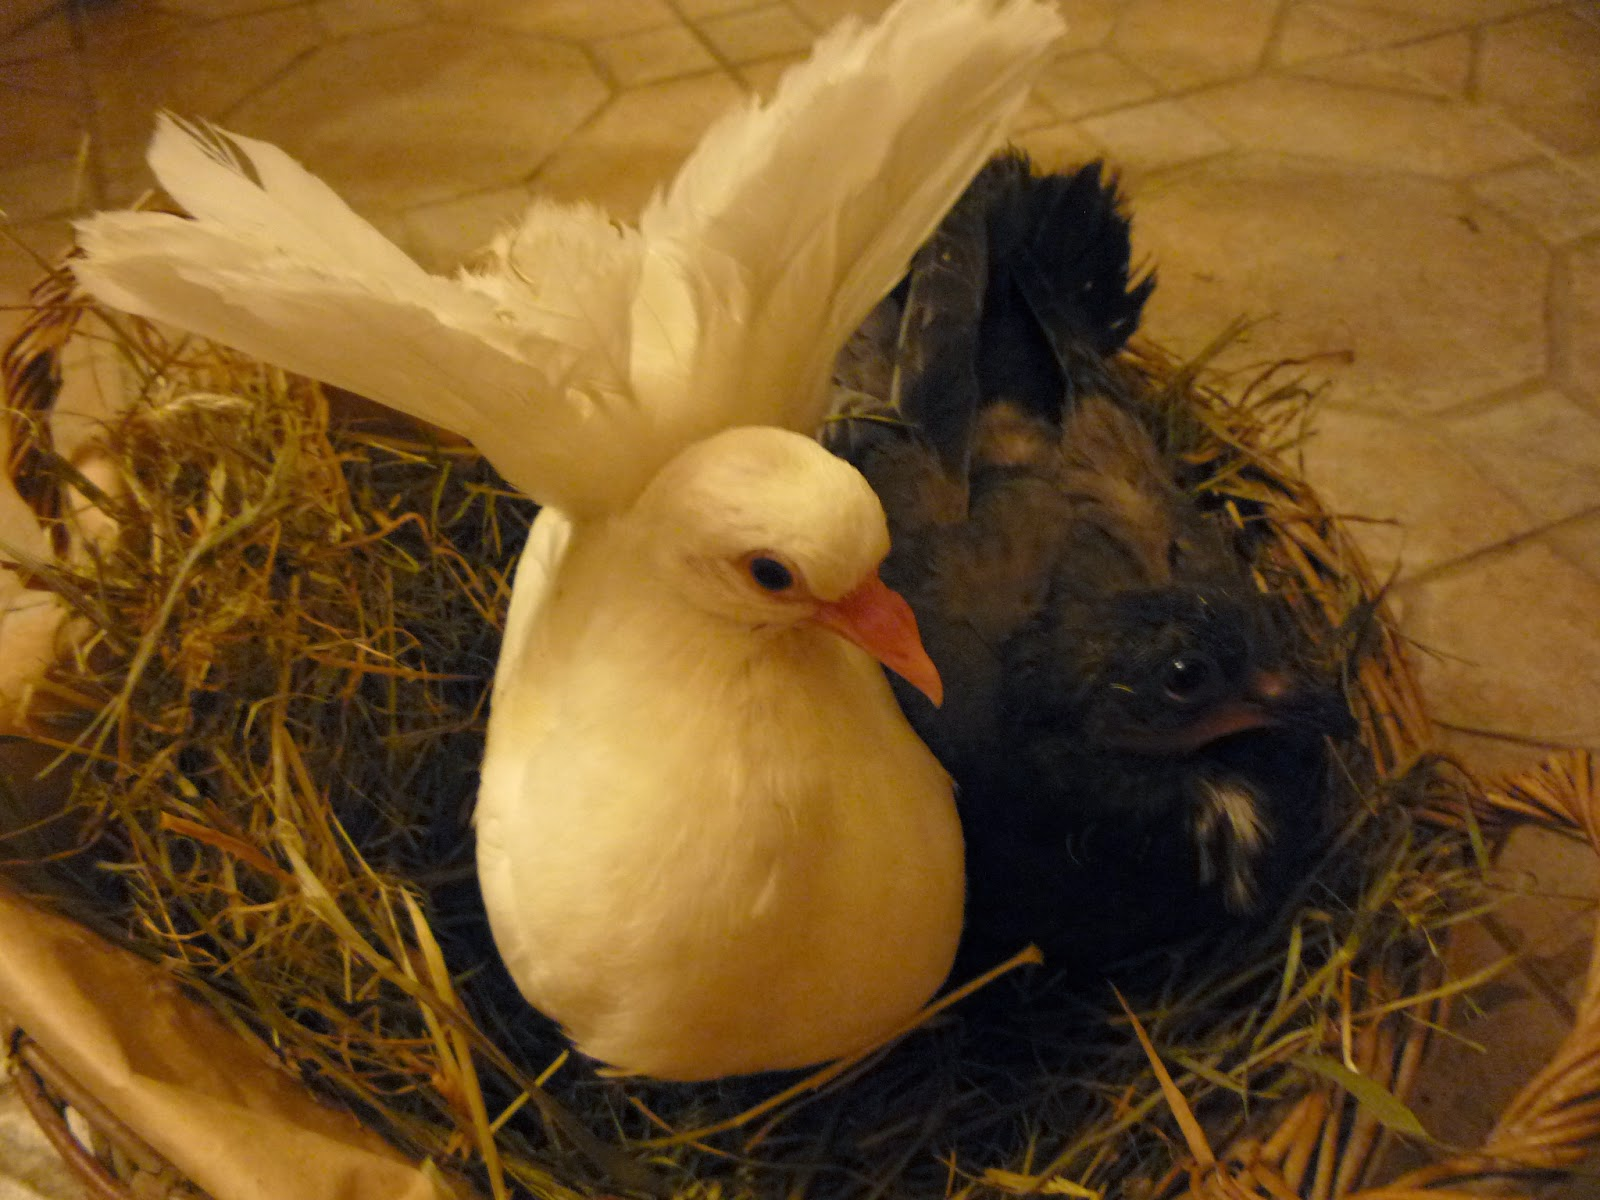 Two orphaned fantail pigeons